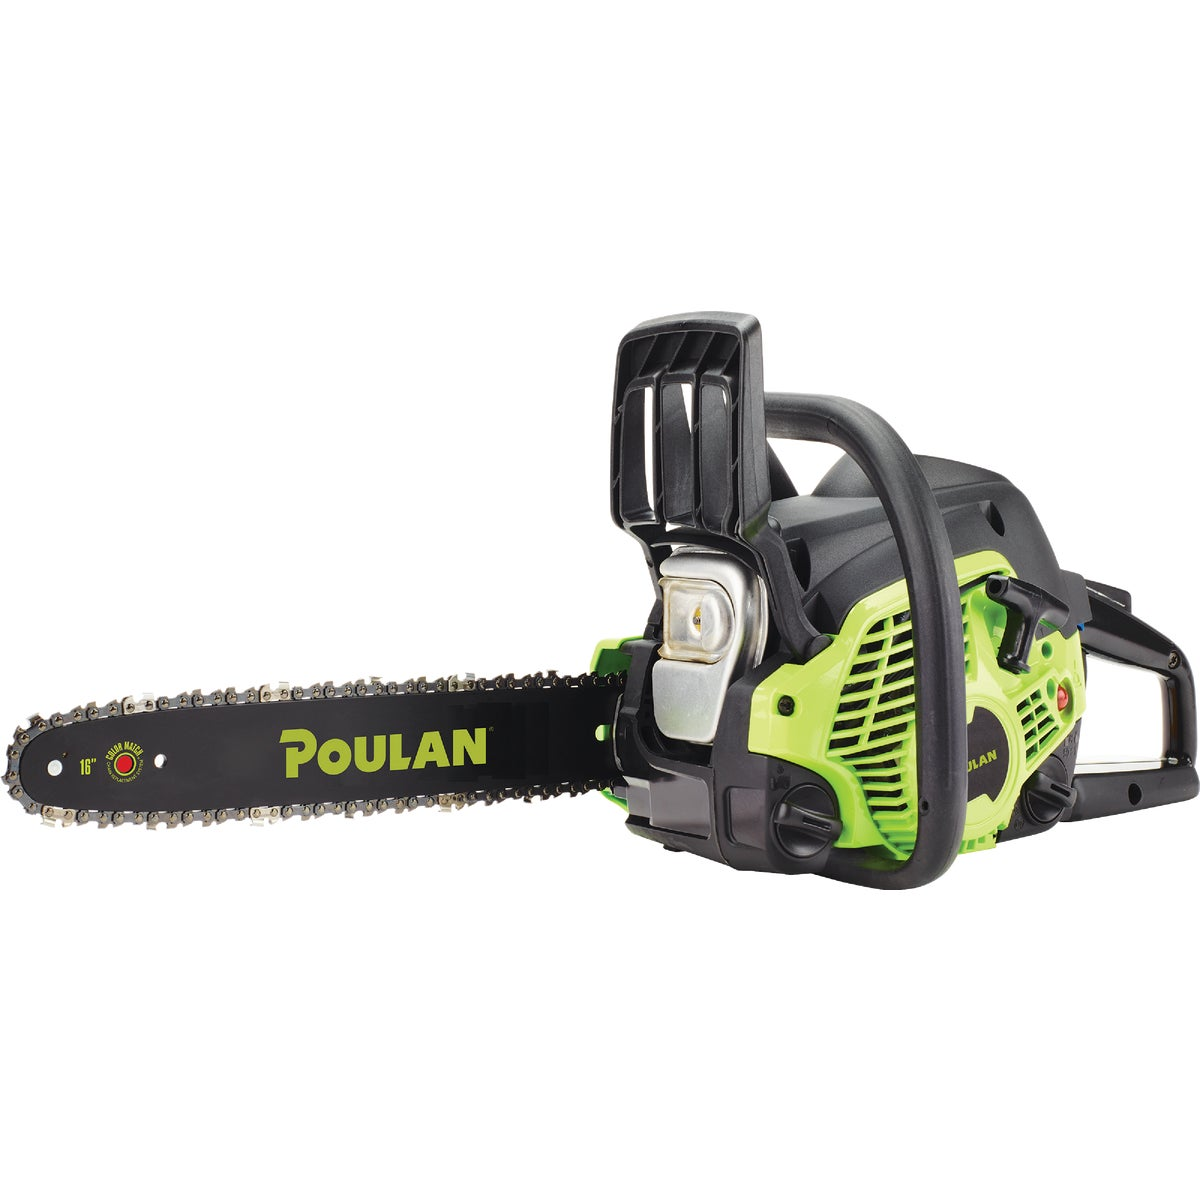 "16"" 34CC GAS CHAINSAW - 967146301 by Poulan"